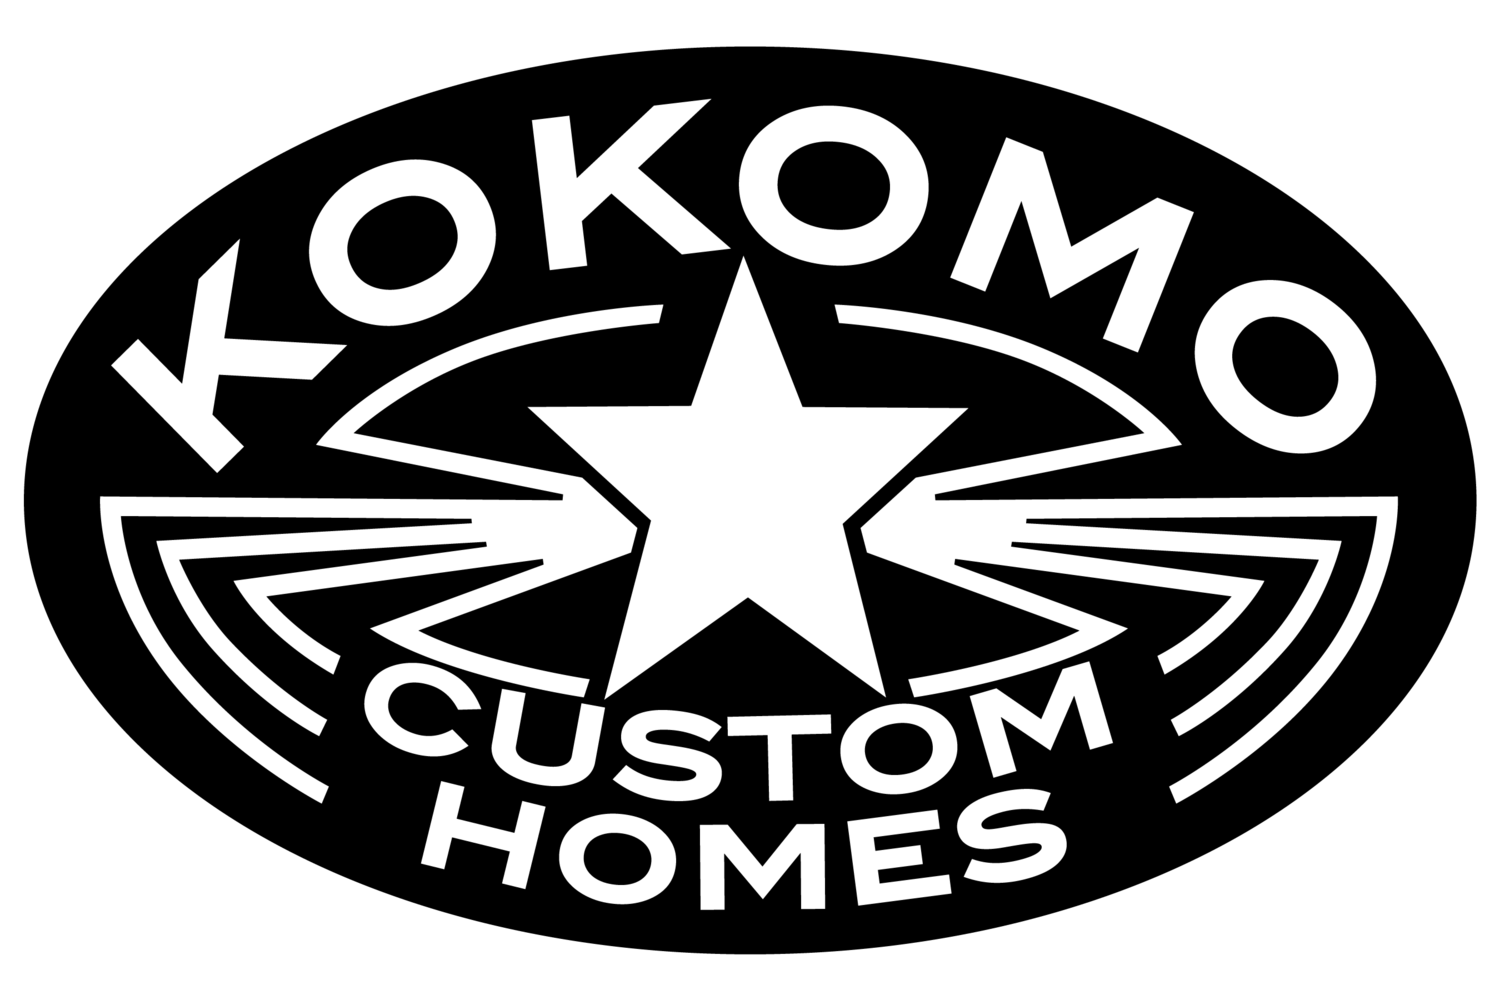 Kokomo Custom Homes